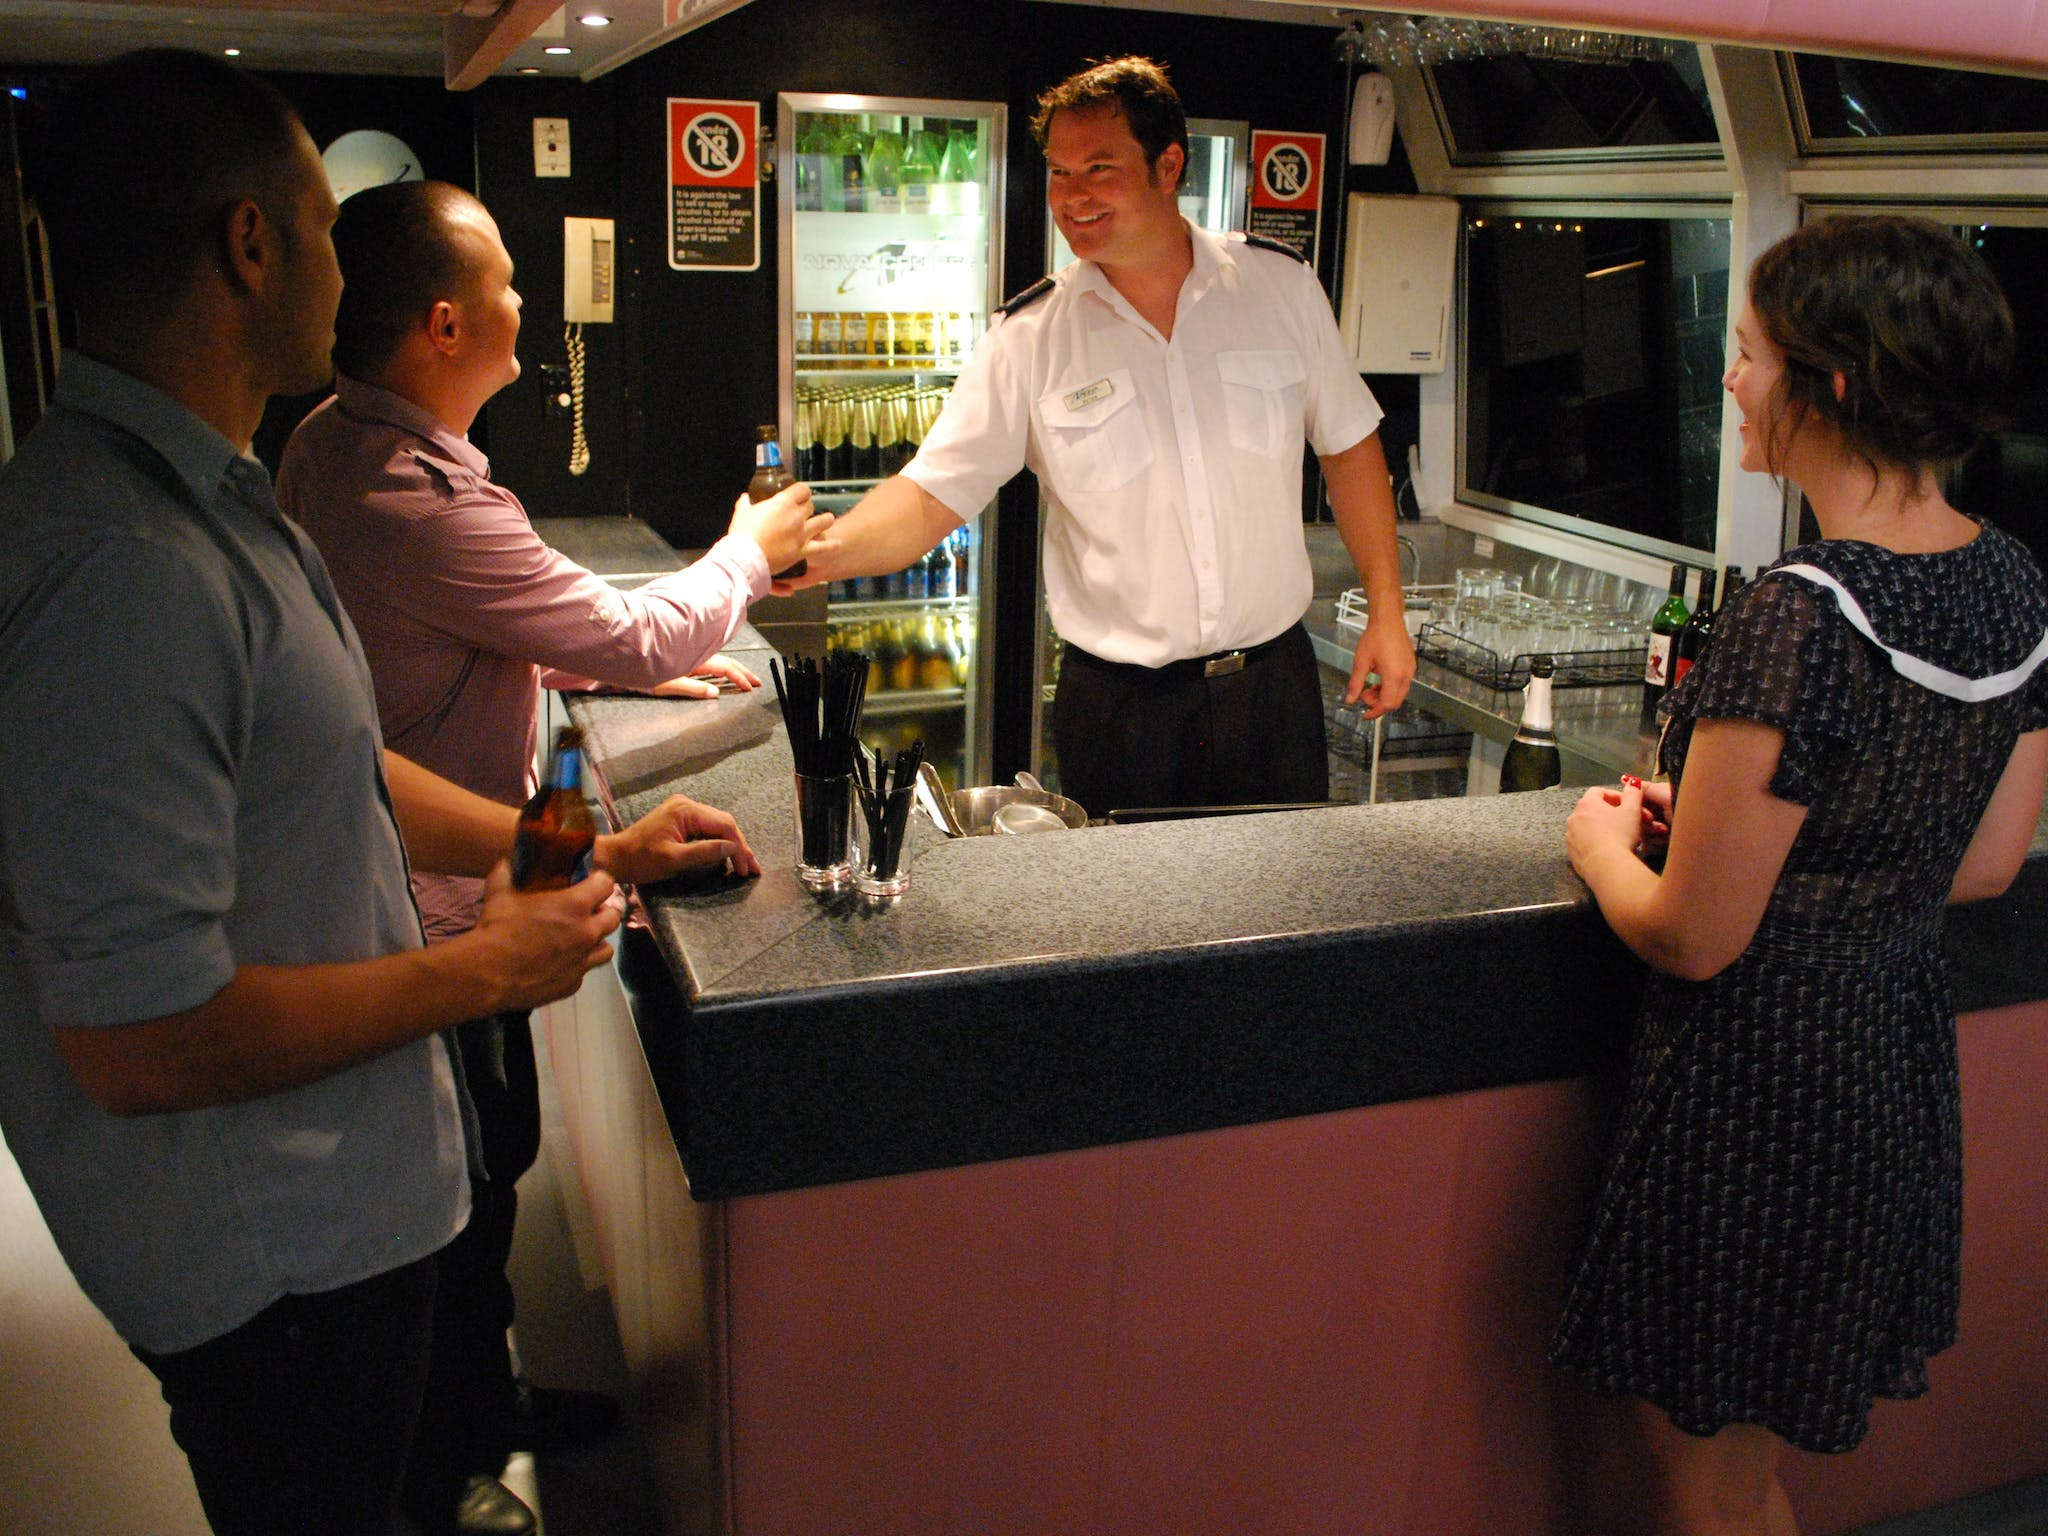 Peter serving drinks to patrons at the bar on 'The Princess'